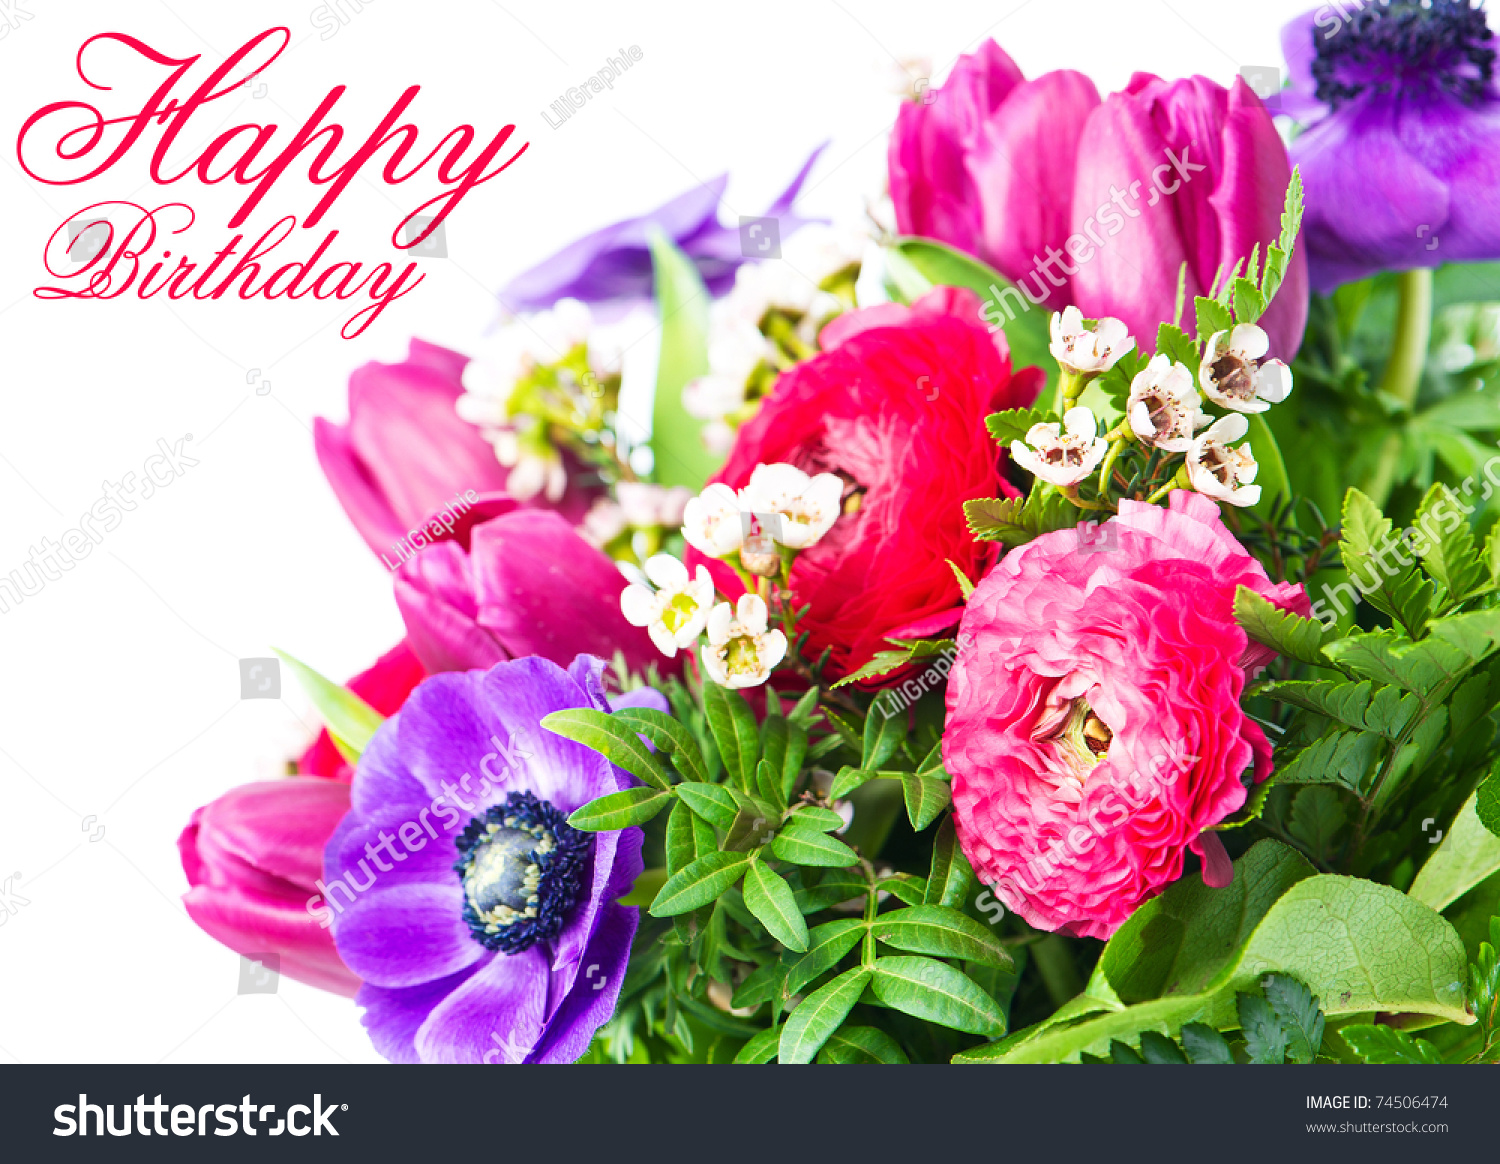 Birthday Flower Greetings Images Flower Wallpaper Hd